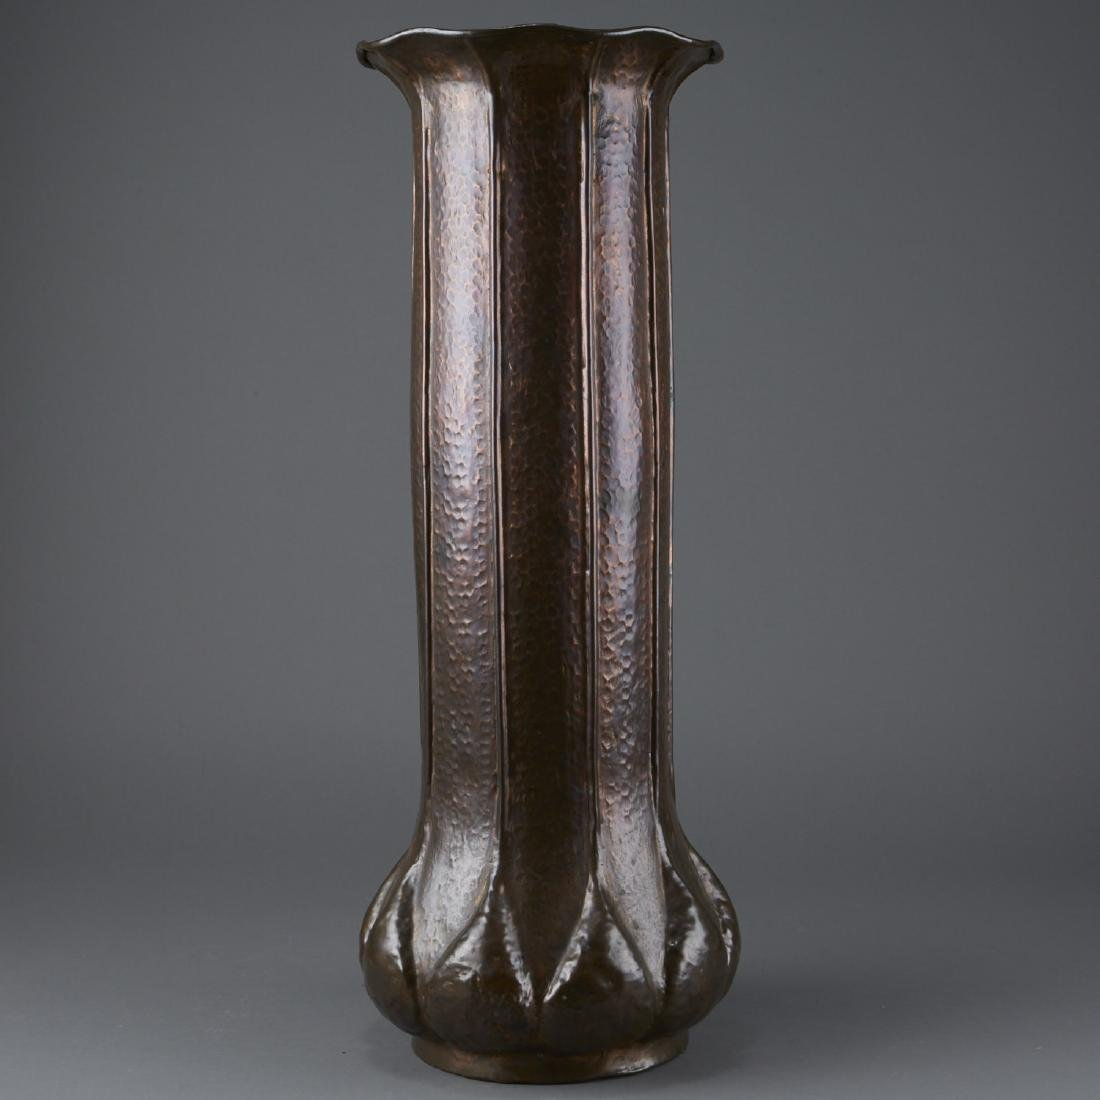 Hammered Copper Arts and Crafts Umbrella Stand